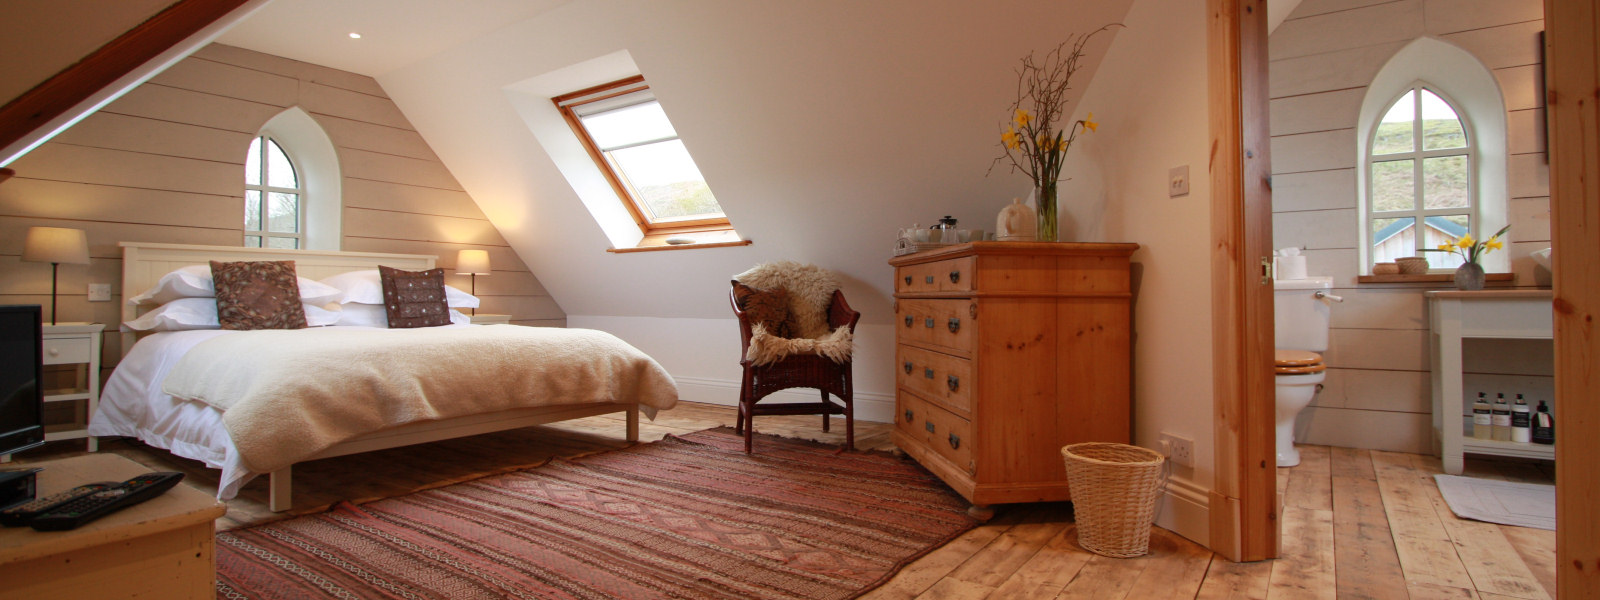 Bedroom in Winterton B&B